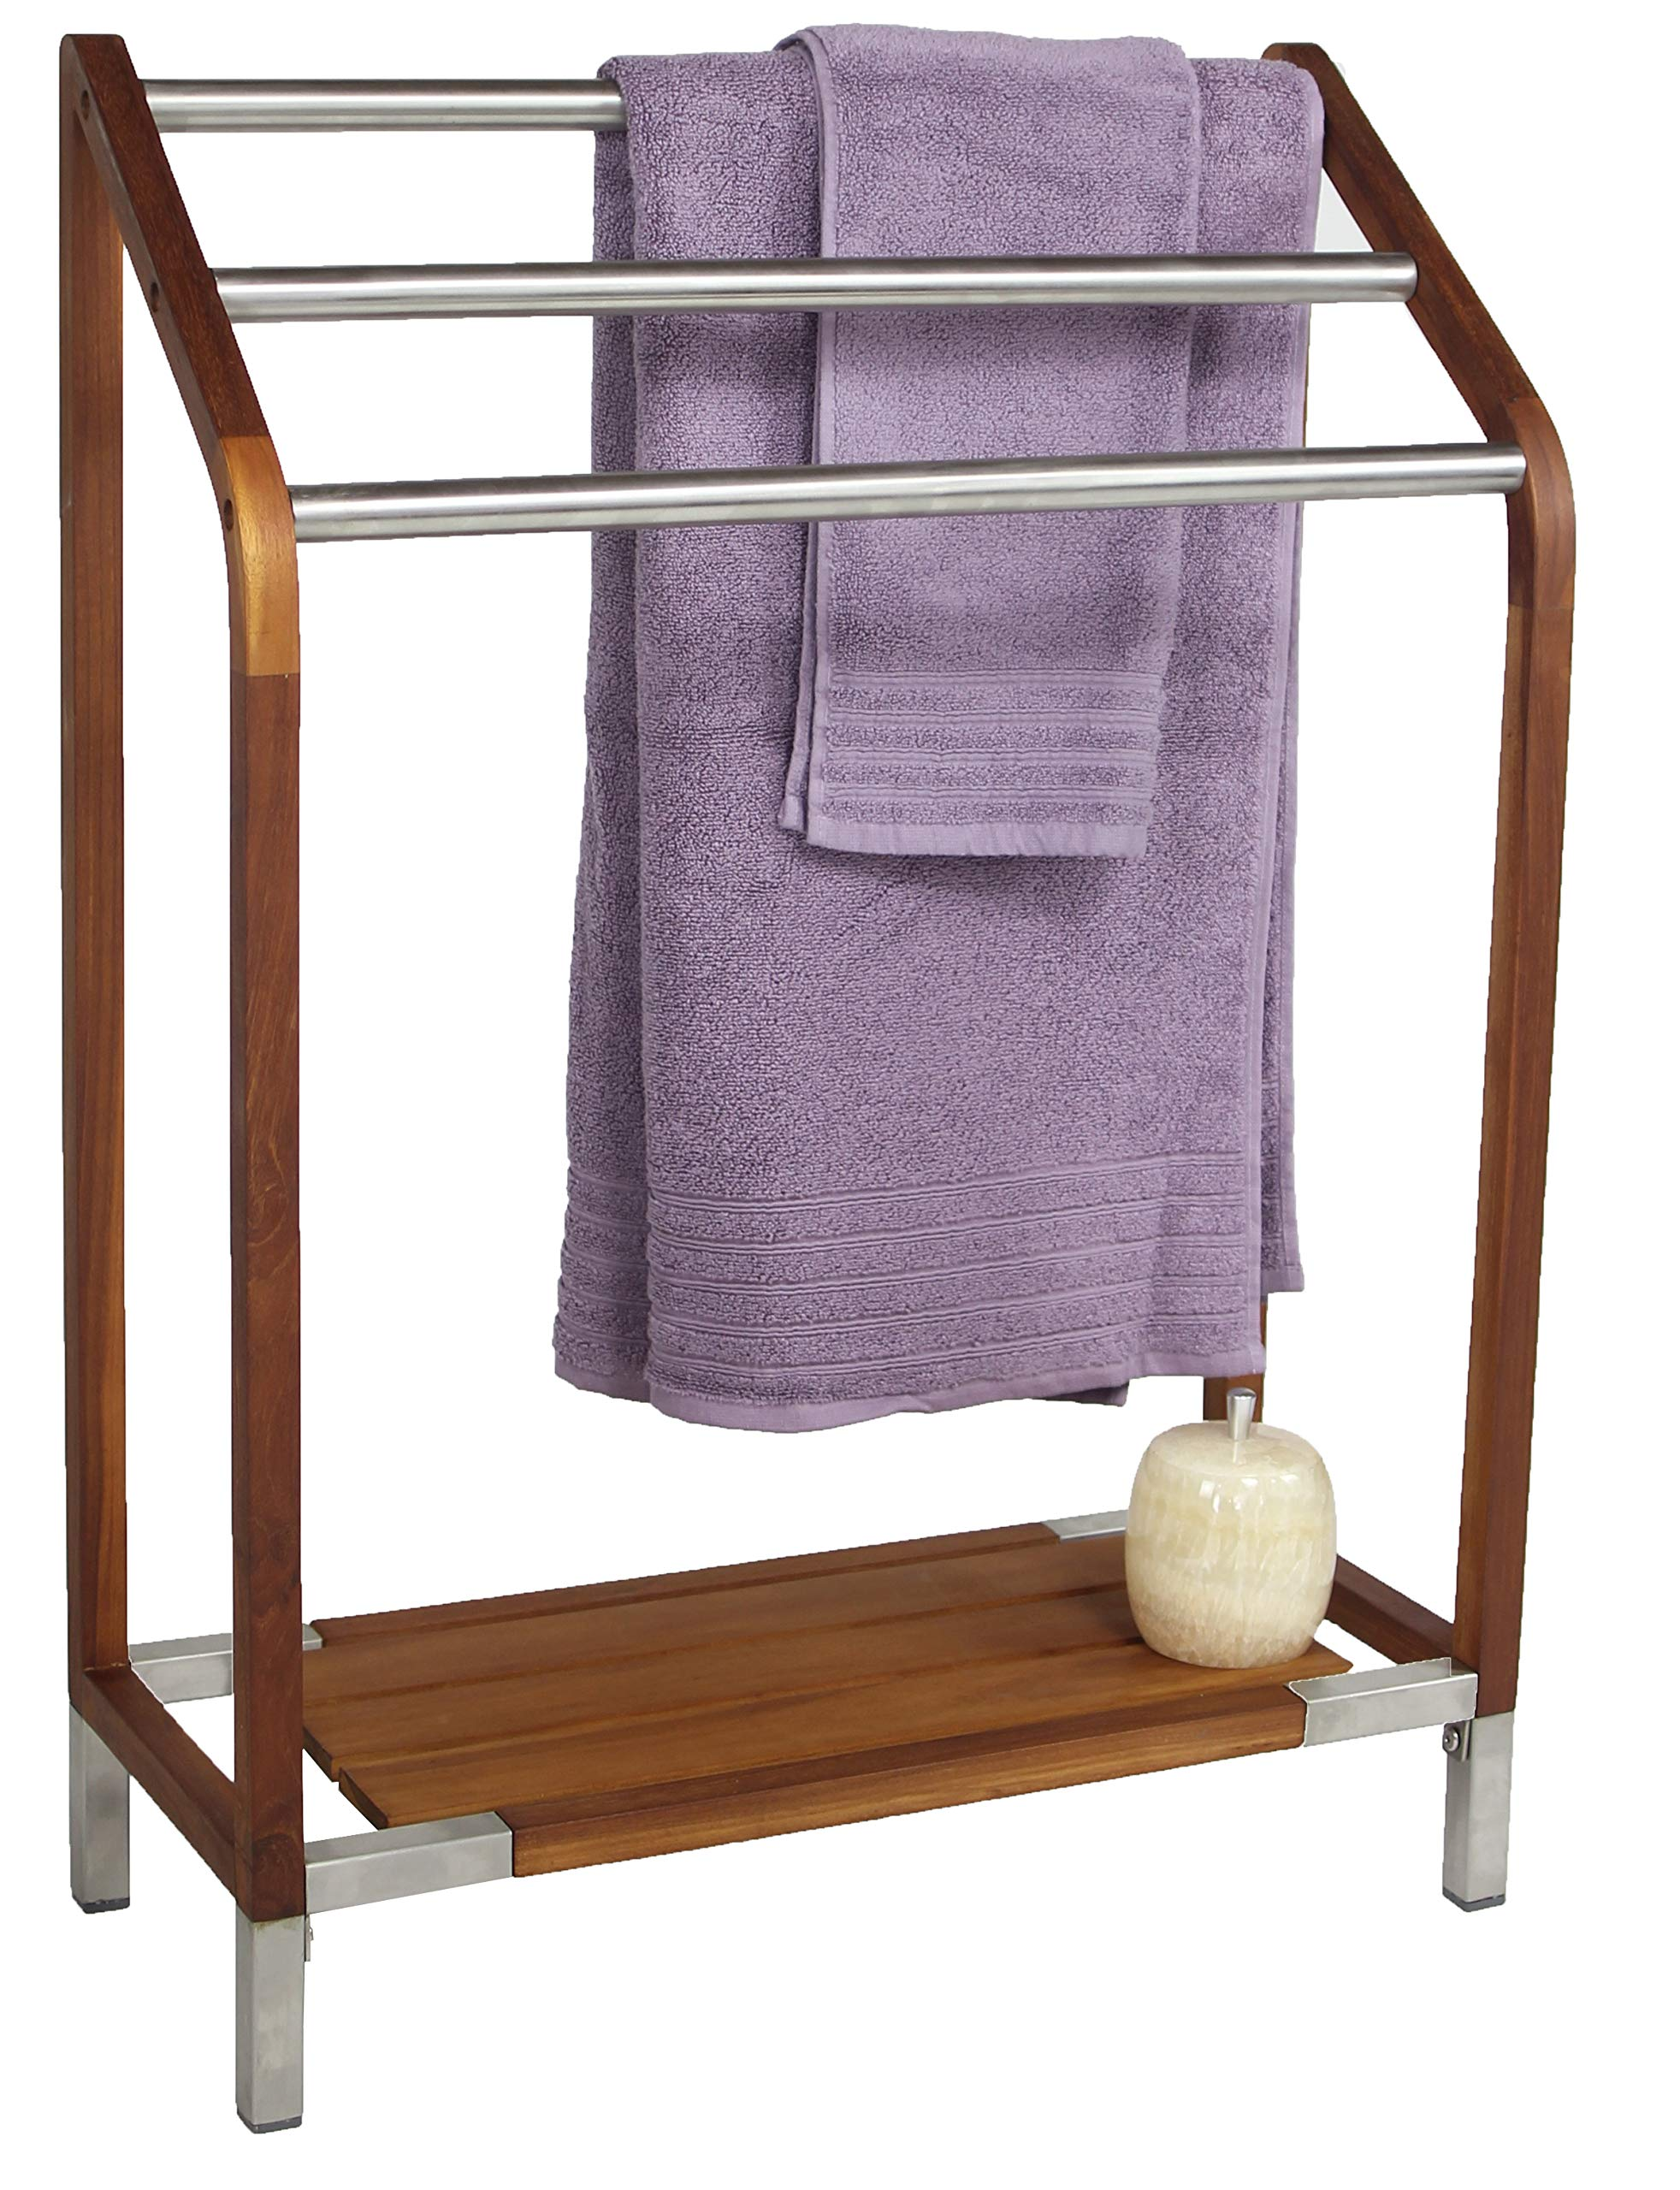 AquaTeak Scratch & Dent - Sula Teak & Stainless Steel Towel Stand